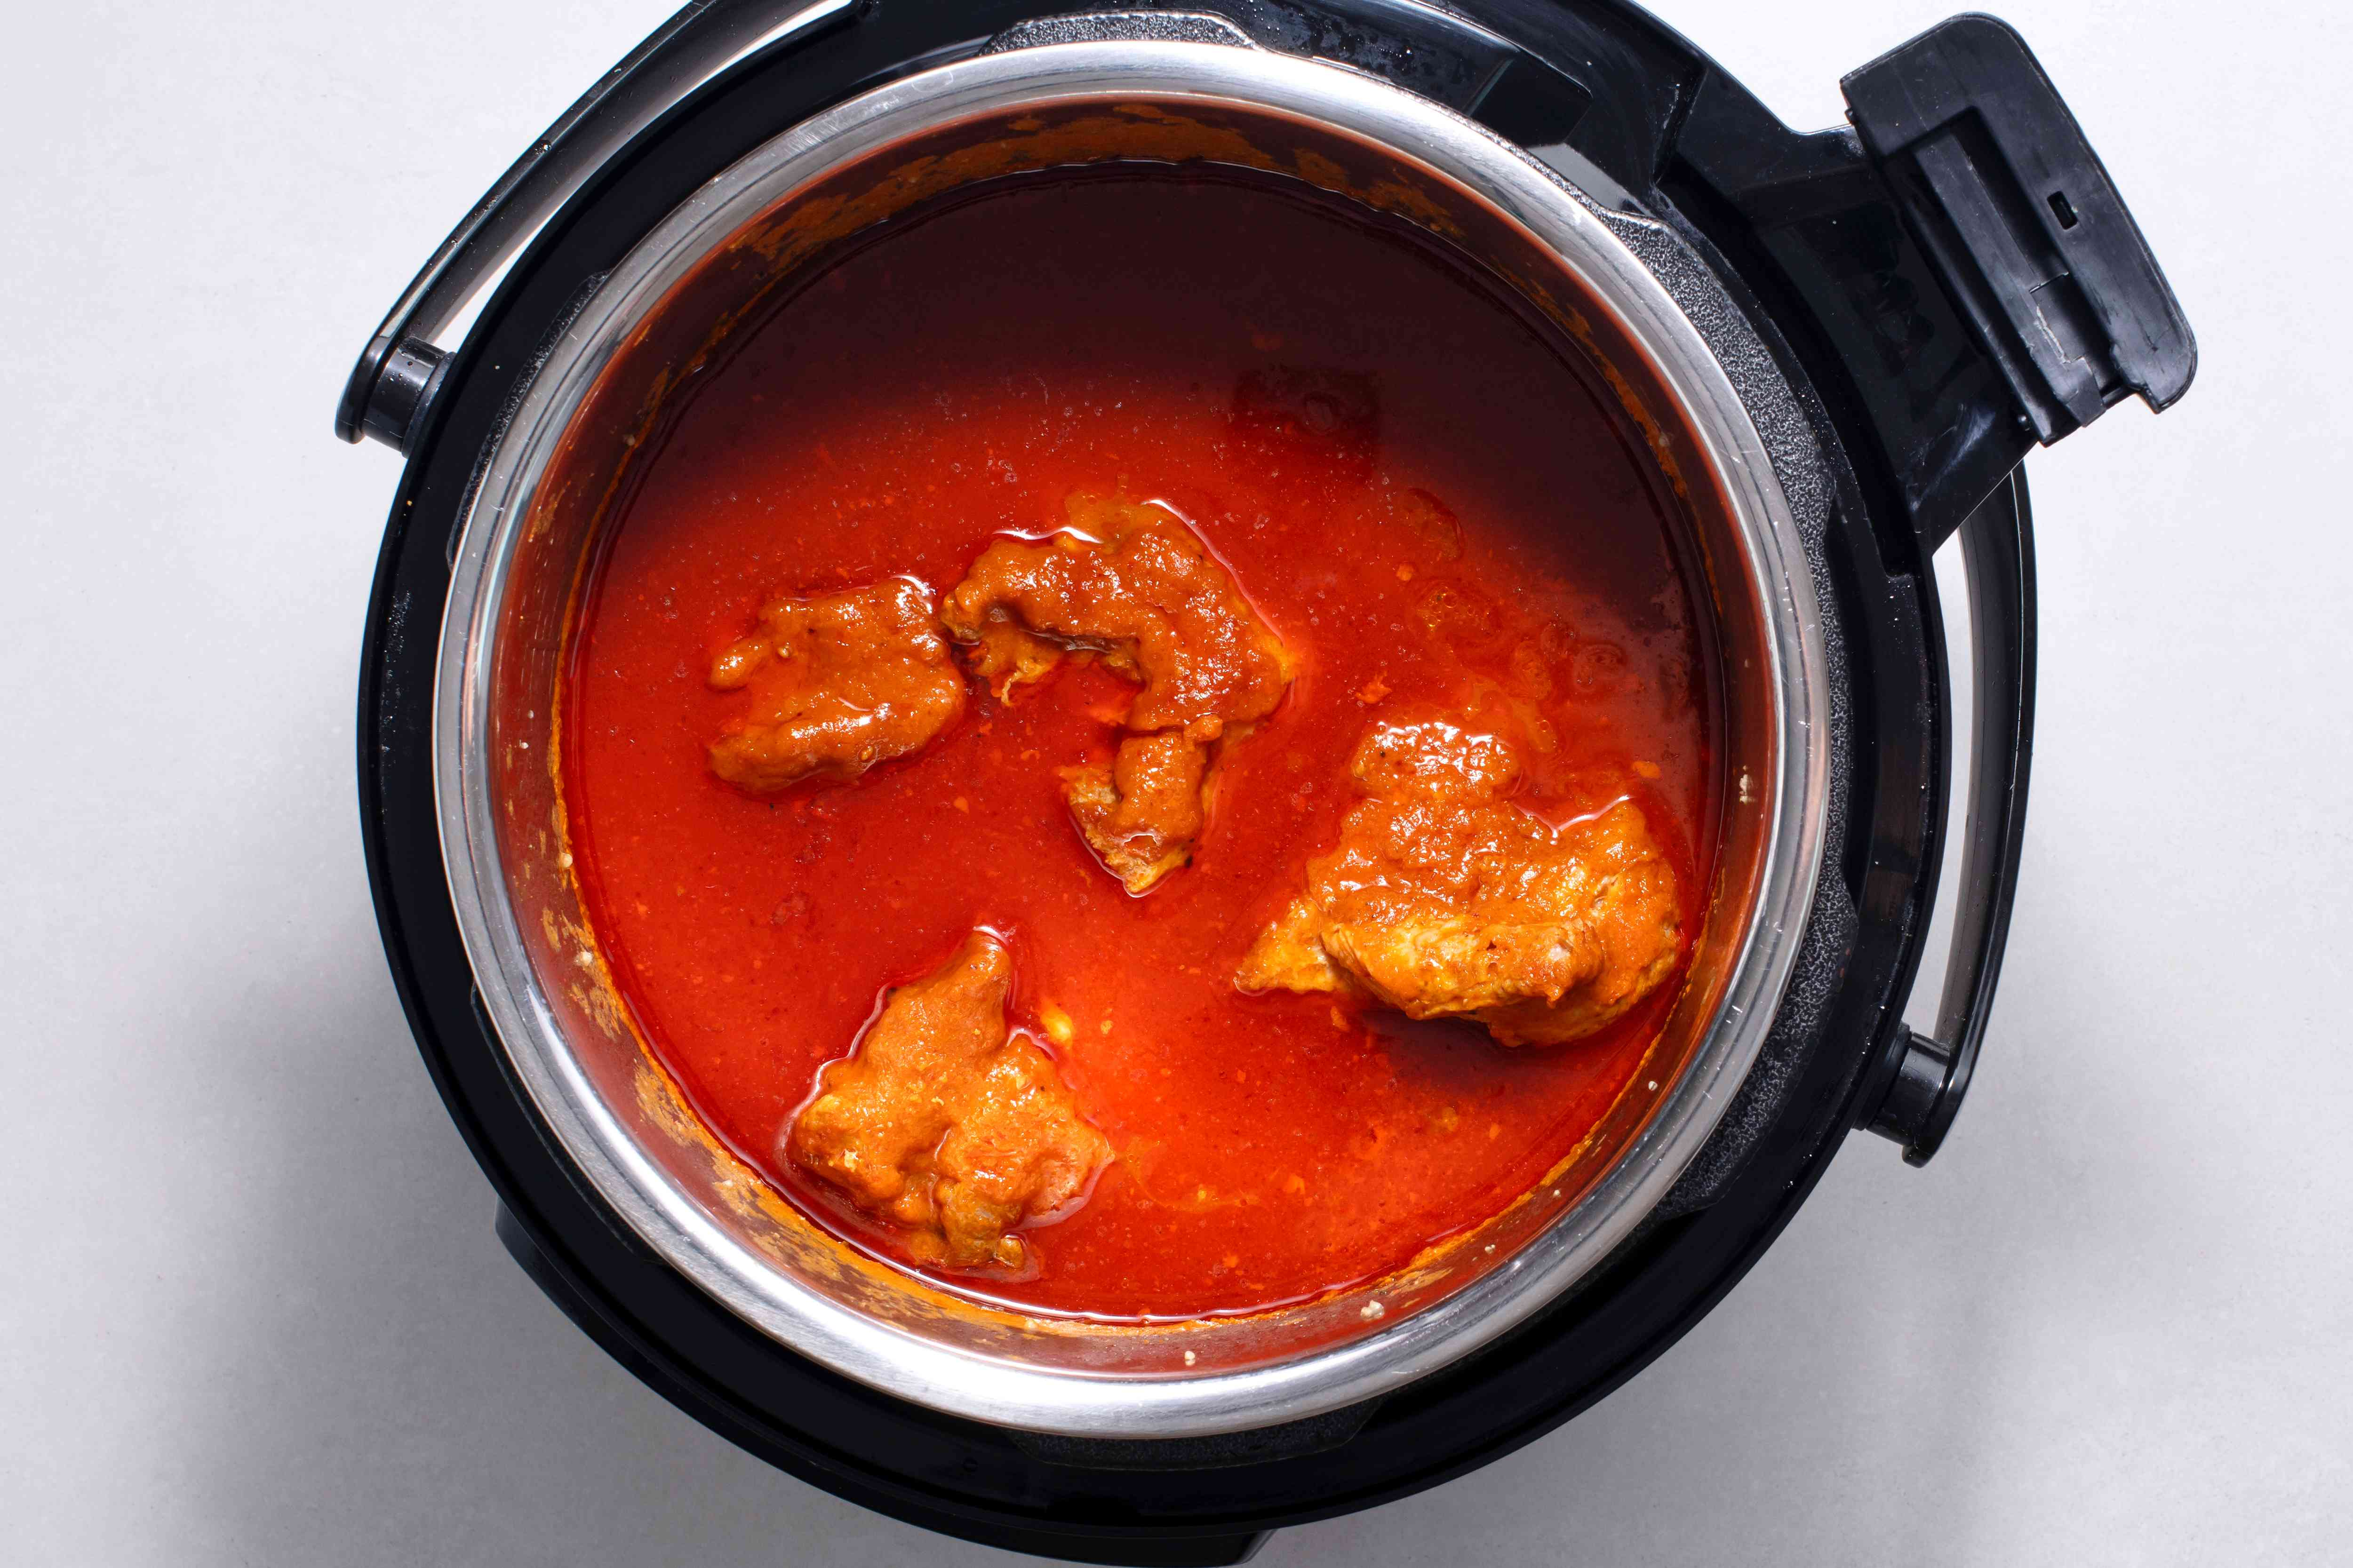 pork and sauce in the instant pot